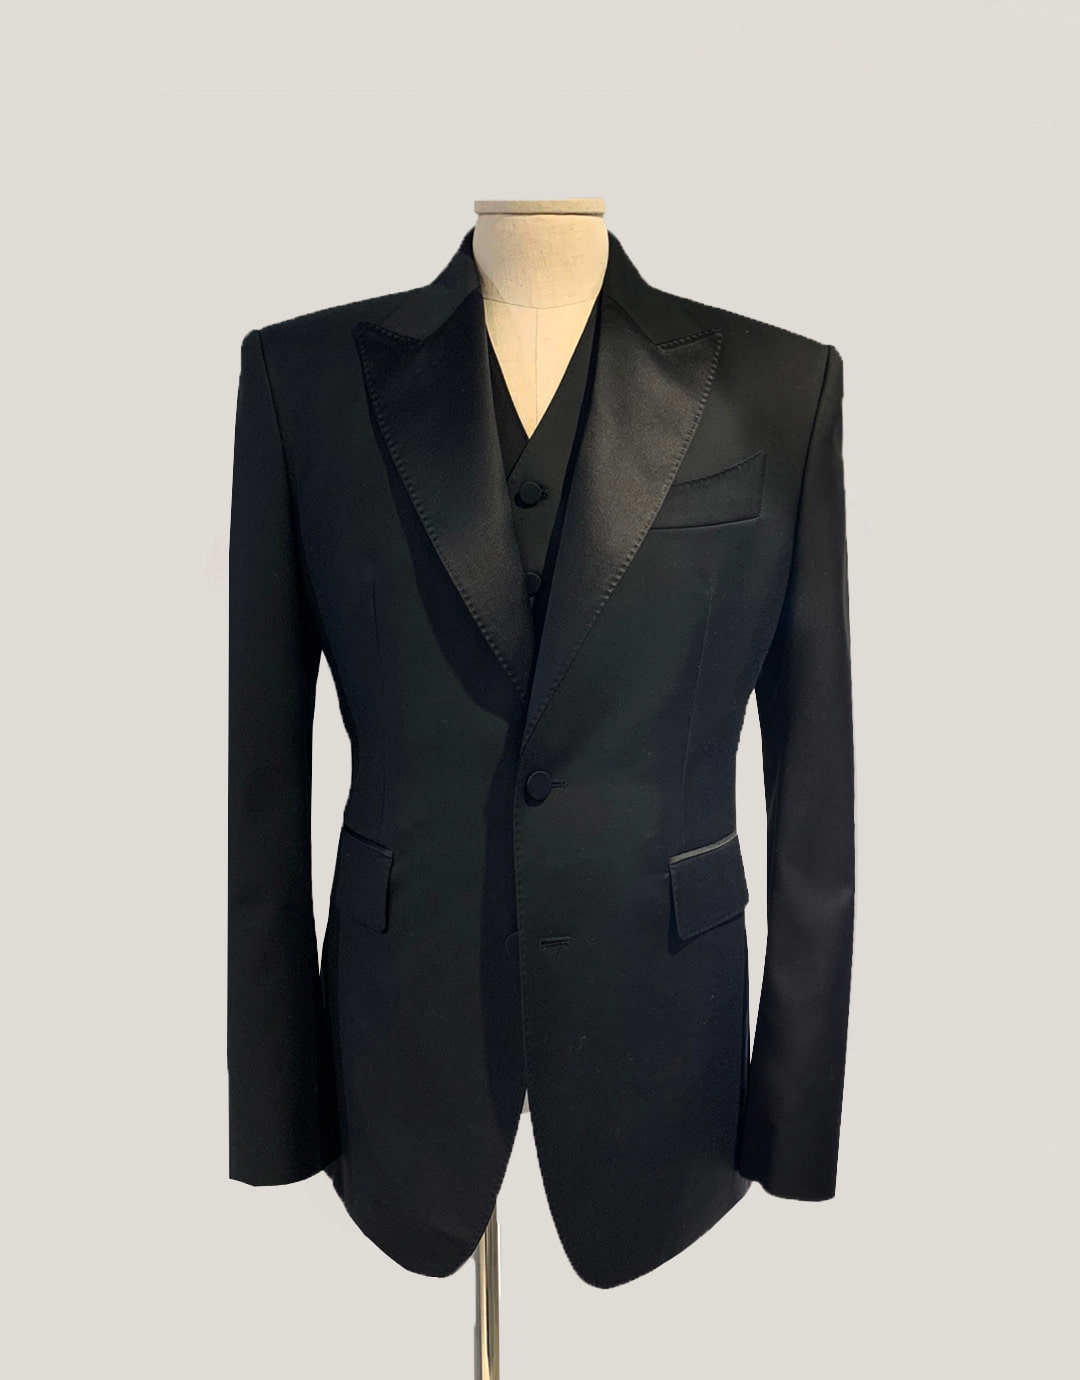 BLACK SINGLE TUXEDO JACKET